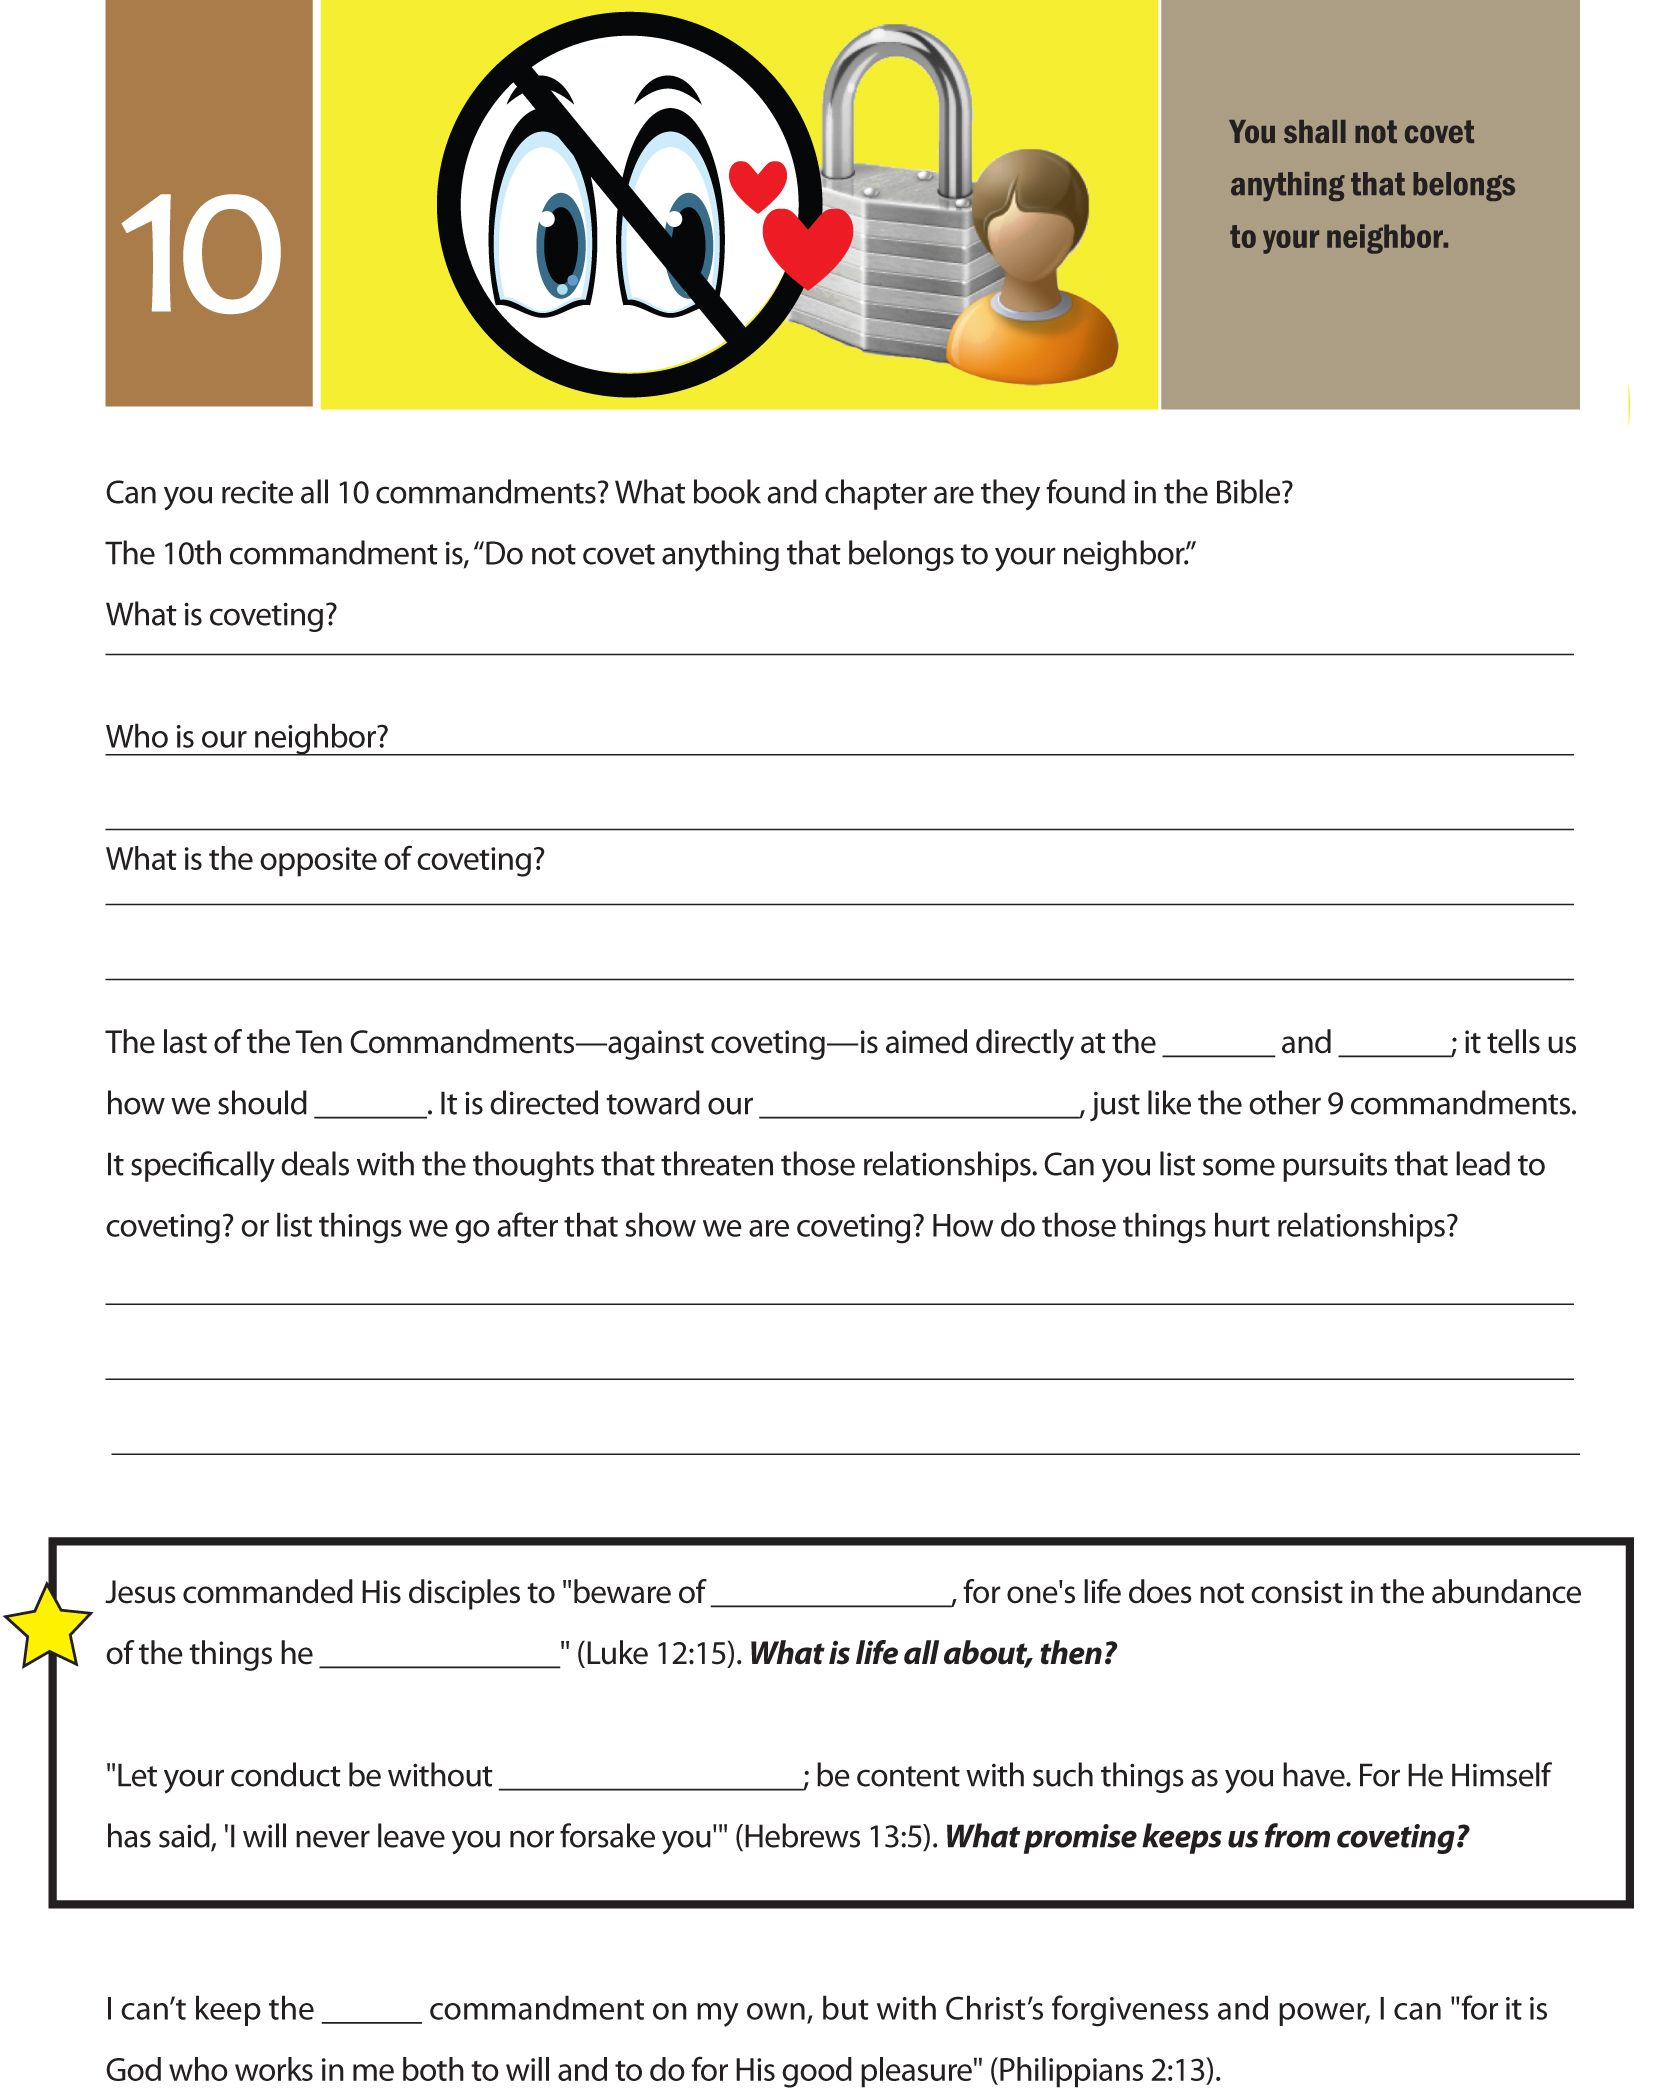 10 commandments of physical therapy - Worksheet To Teach The Tenth Of The 10 Commandments Do Not Covet Anything That Belongs